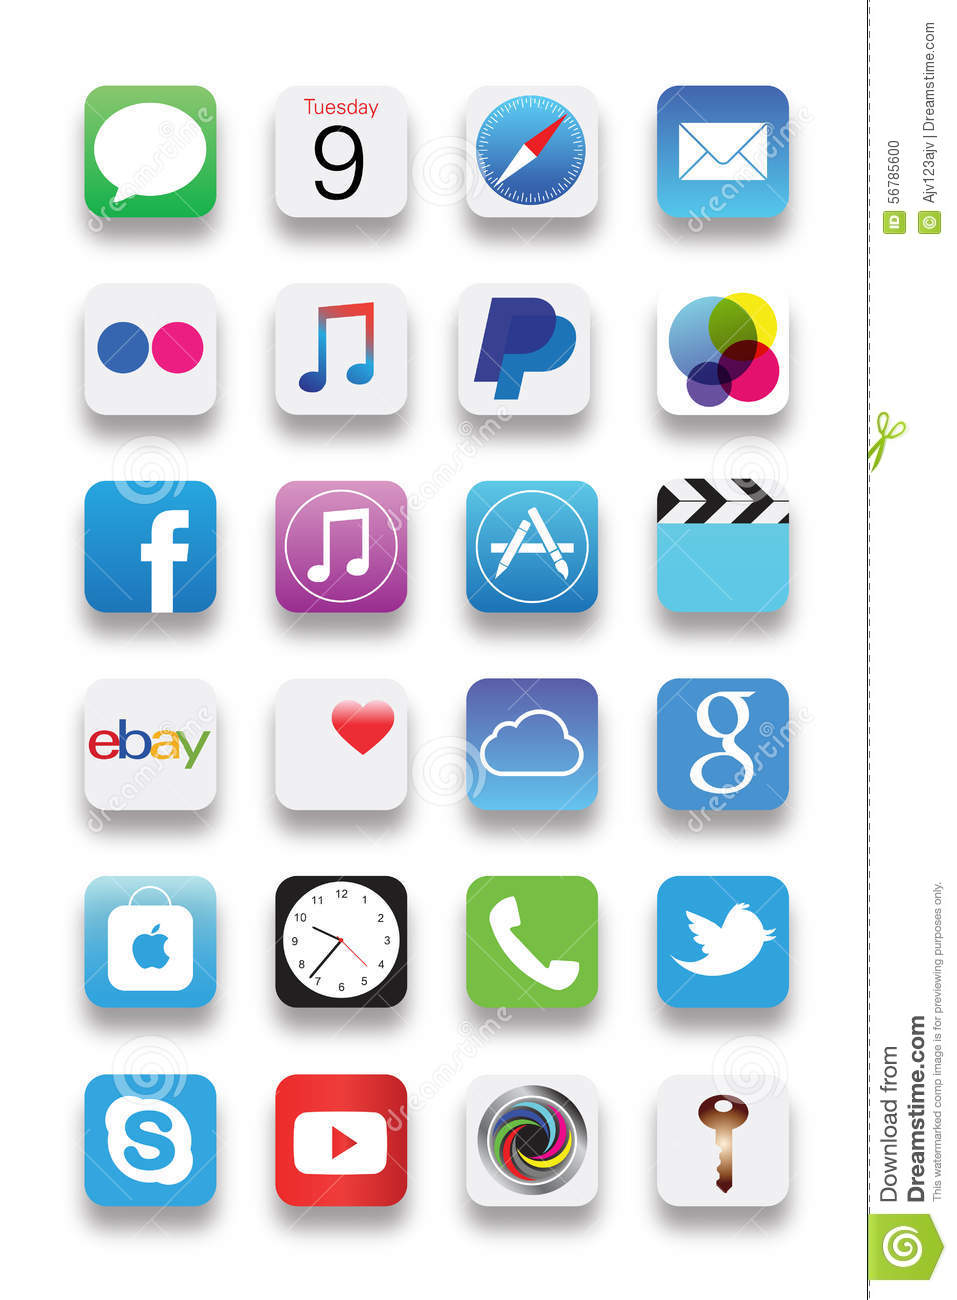 New social apps for iphone